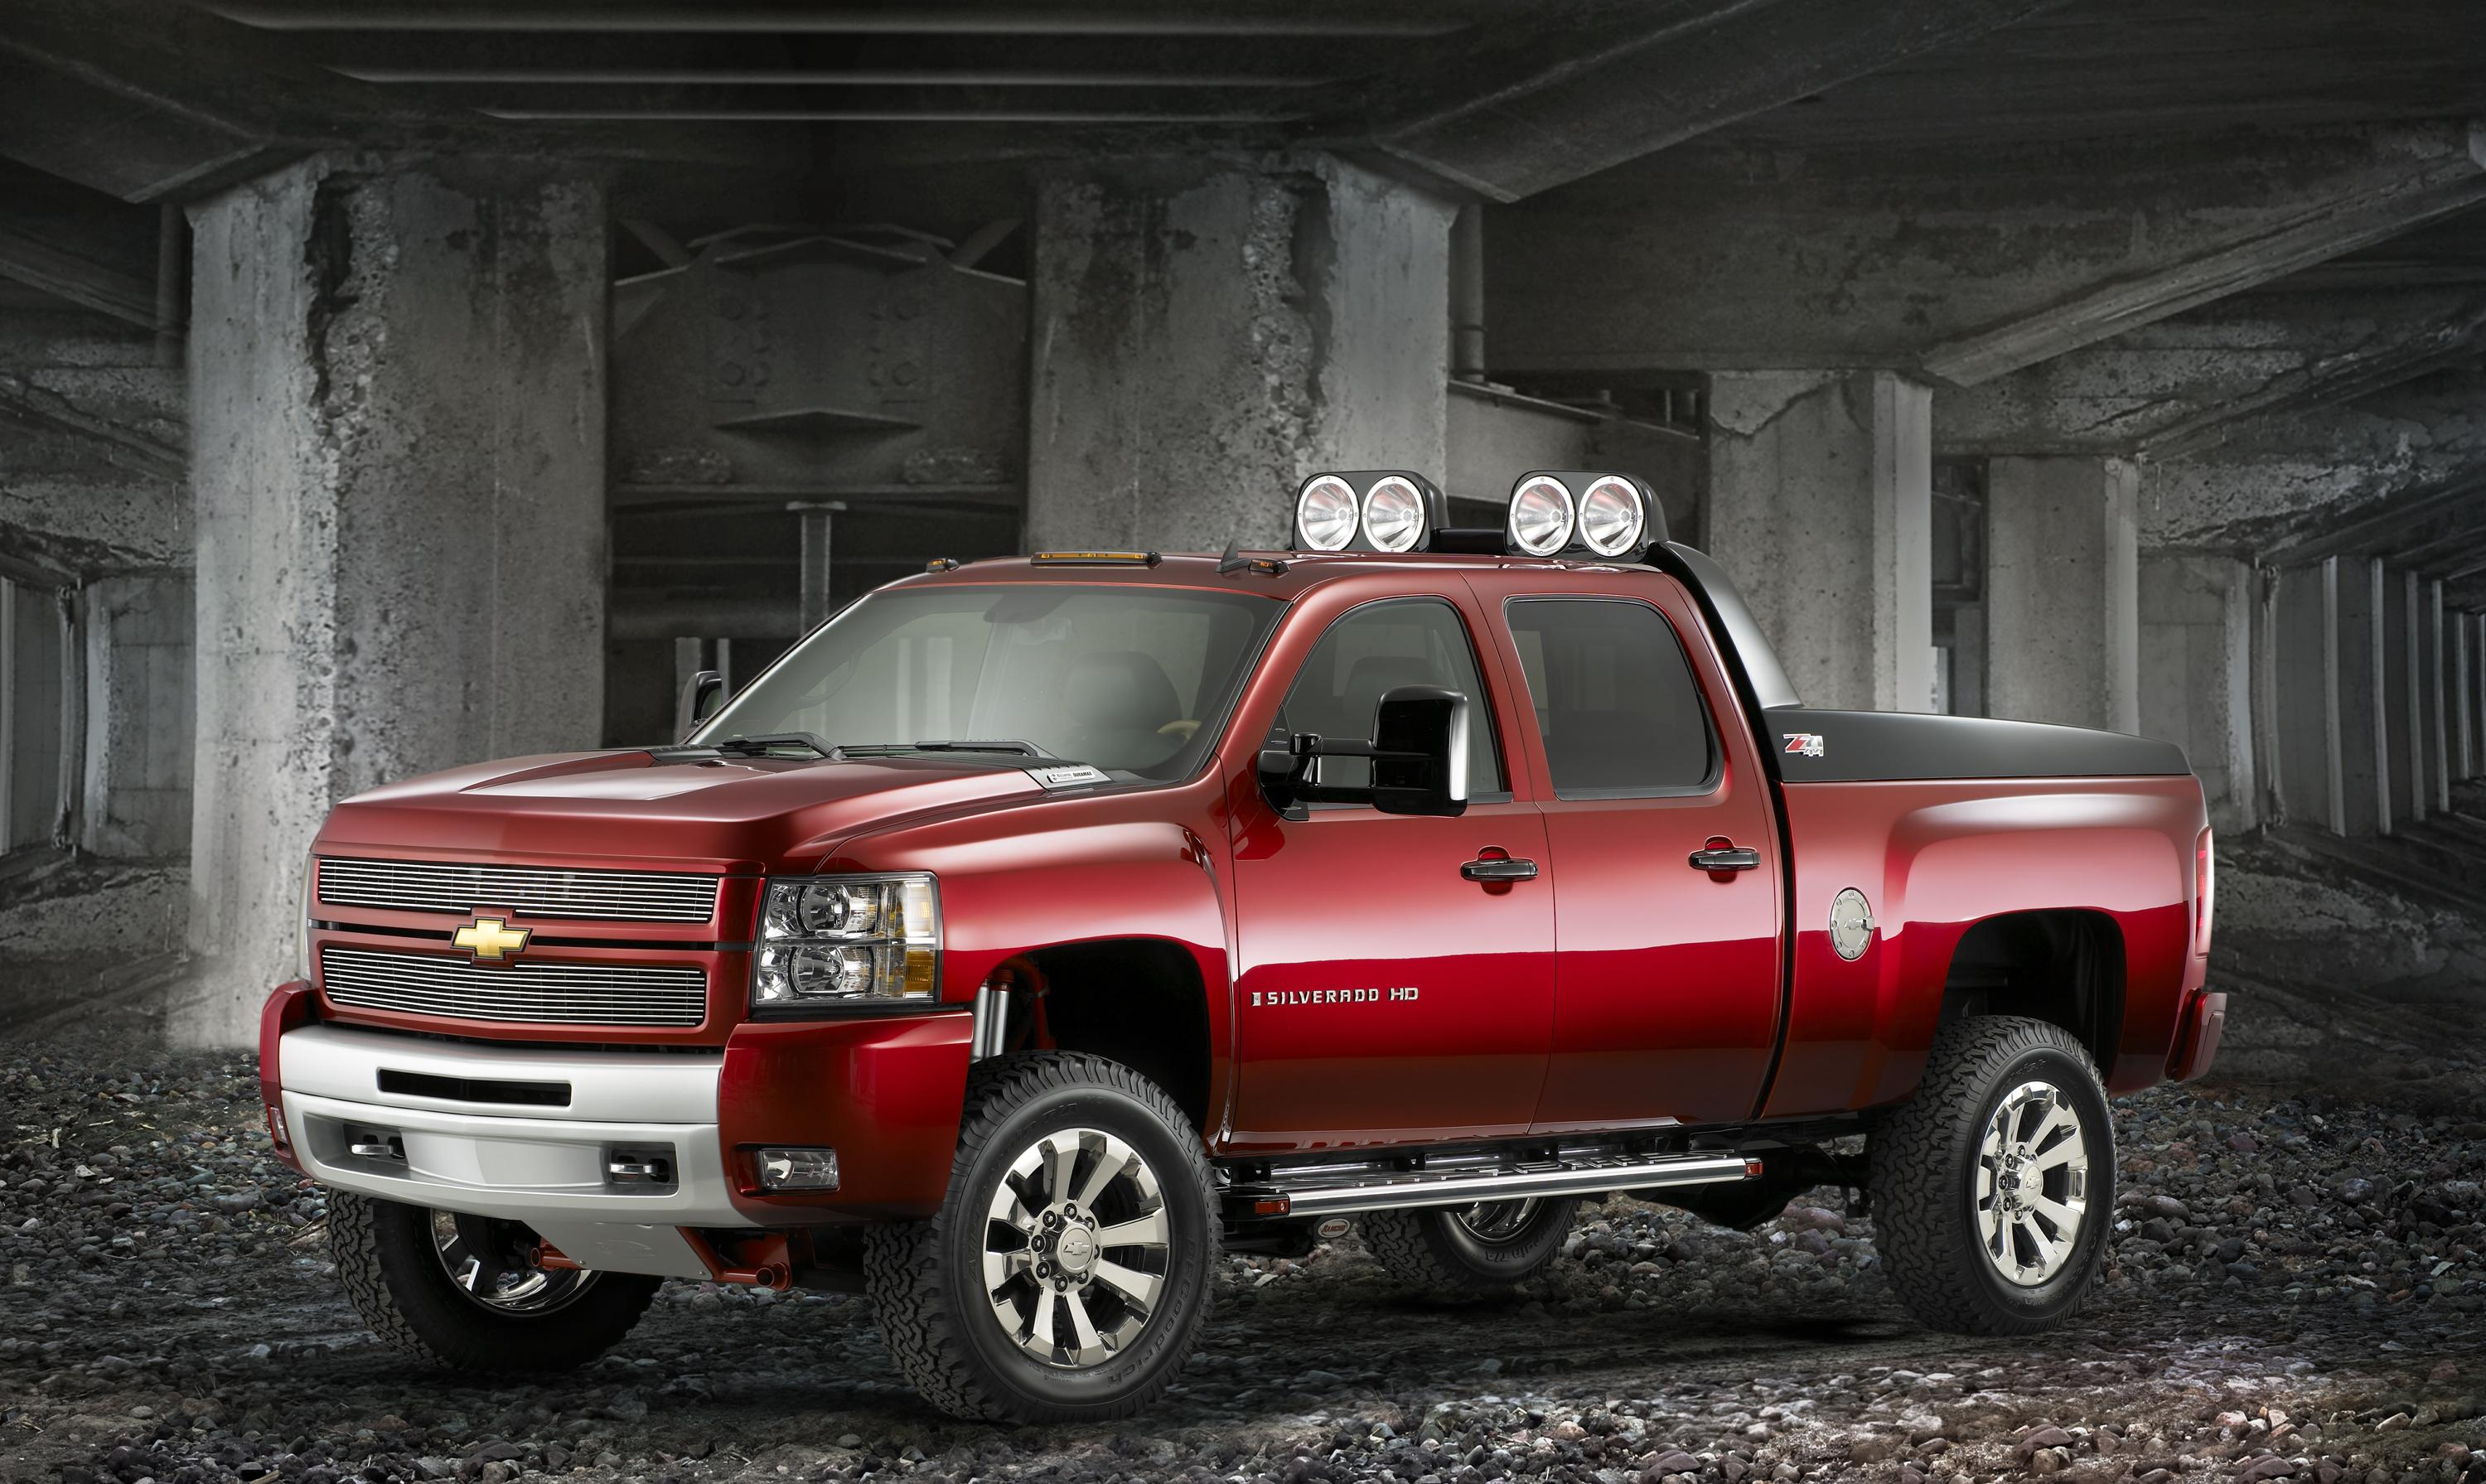 2007 Chevrolet Silverado HD Crew Z71 | Top Speed